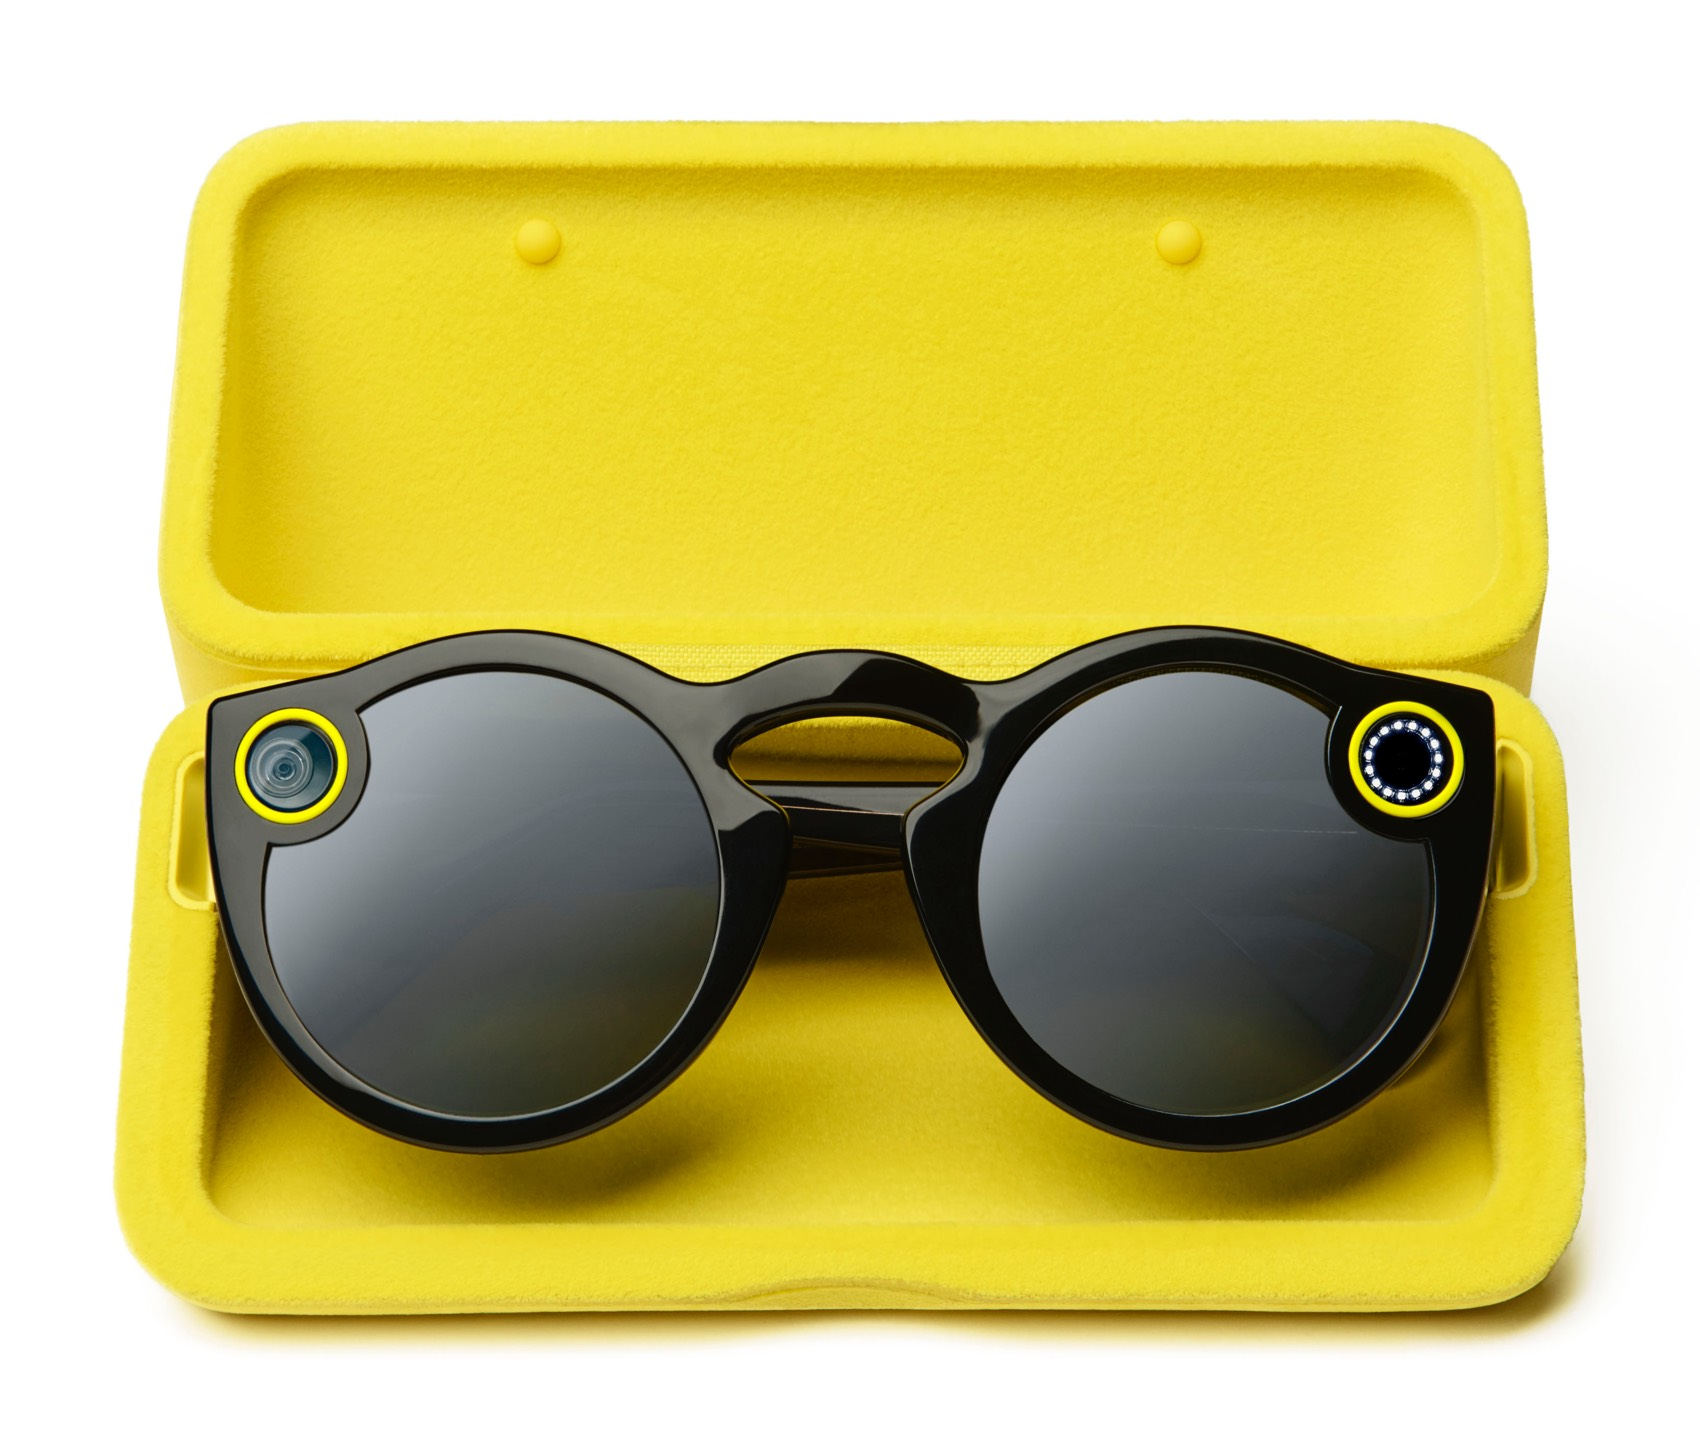 Spectacles by Snap Inc..